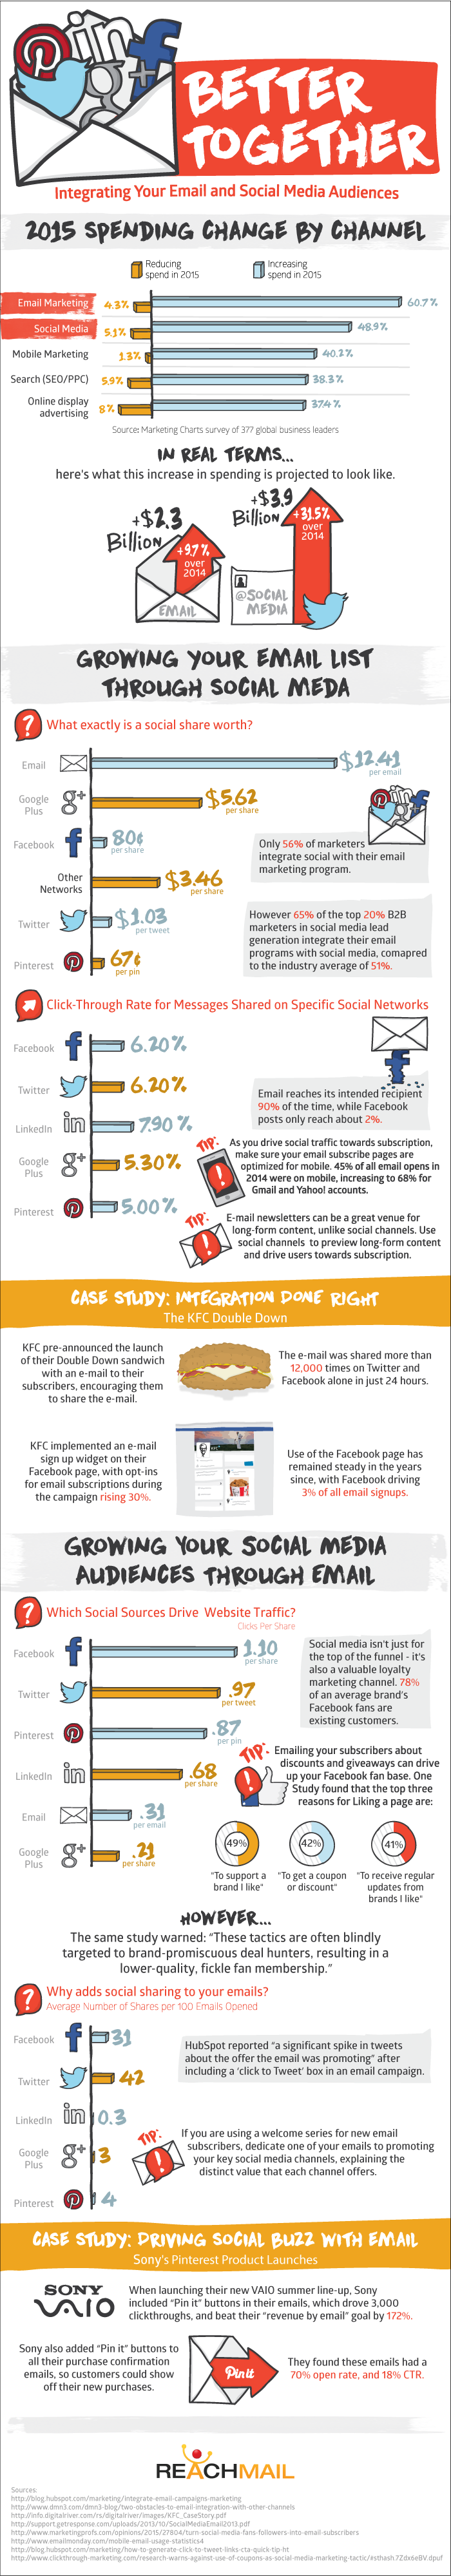 Better Together: Integrating Your Email and Social Media Audiences - infographic